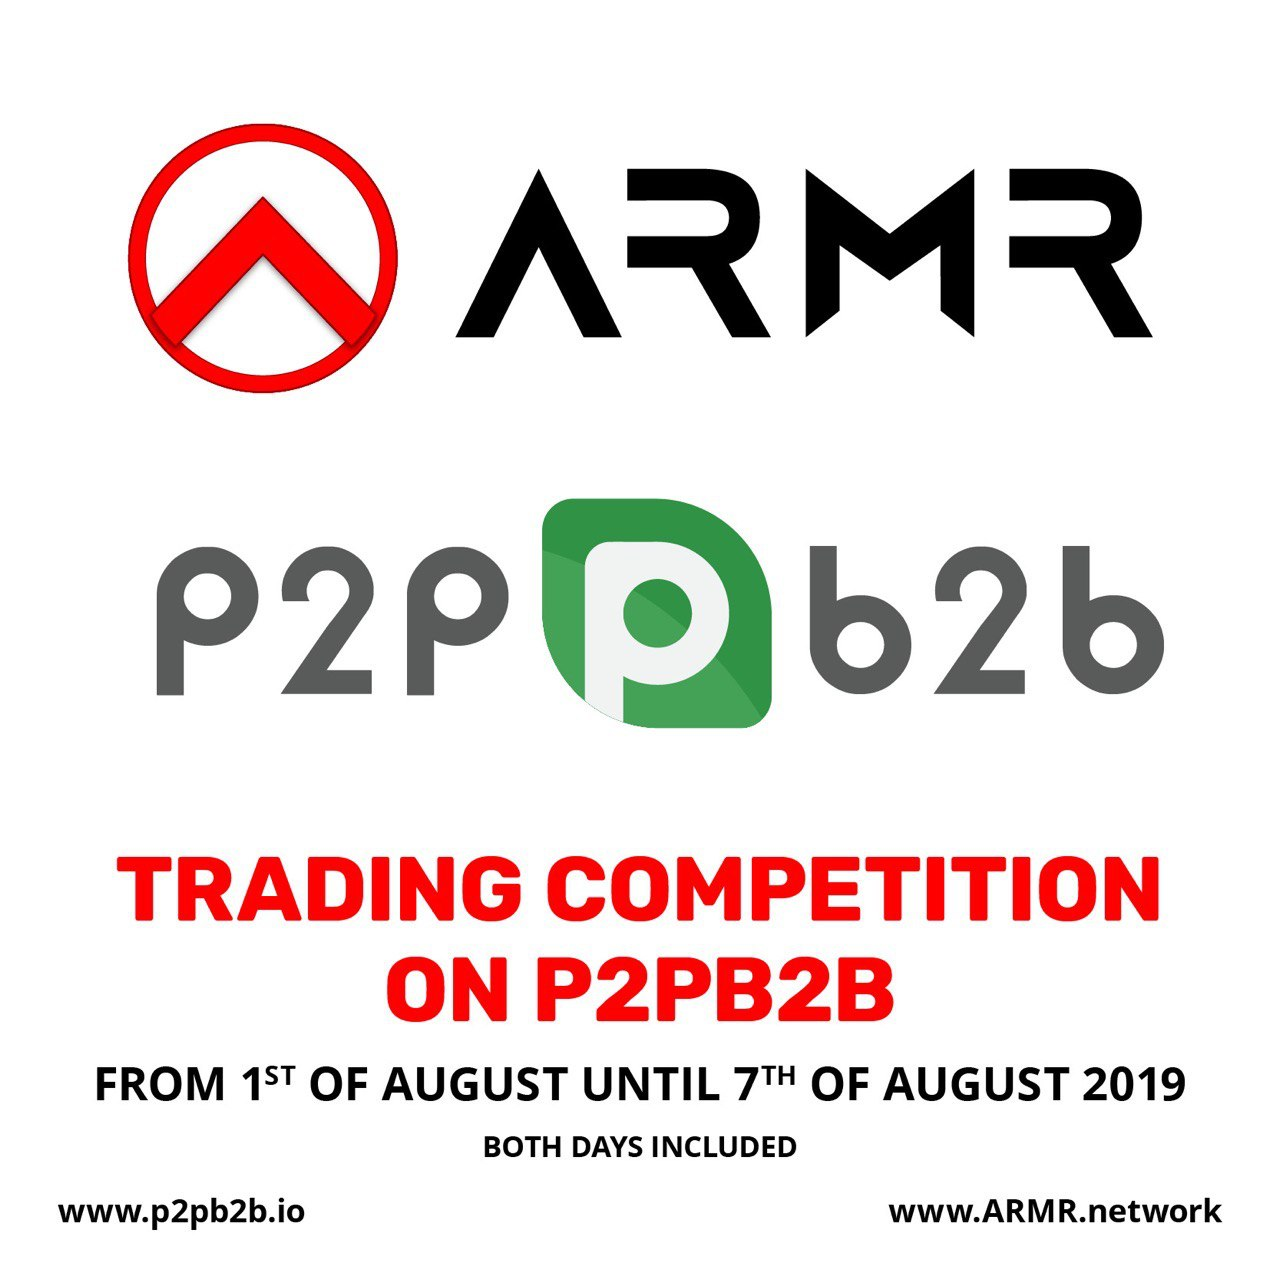 ARMR Trading Competition on p2pb2b